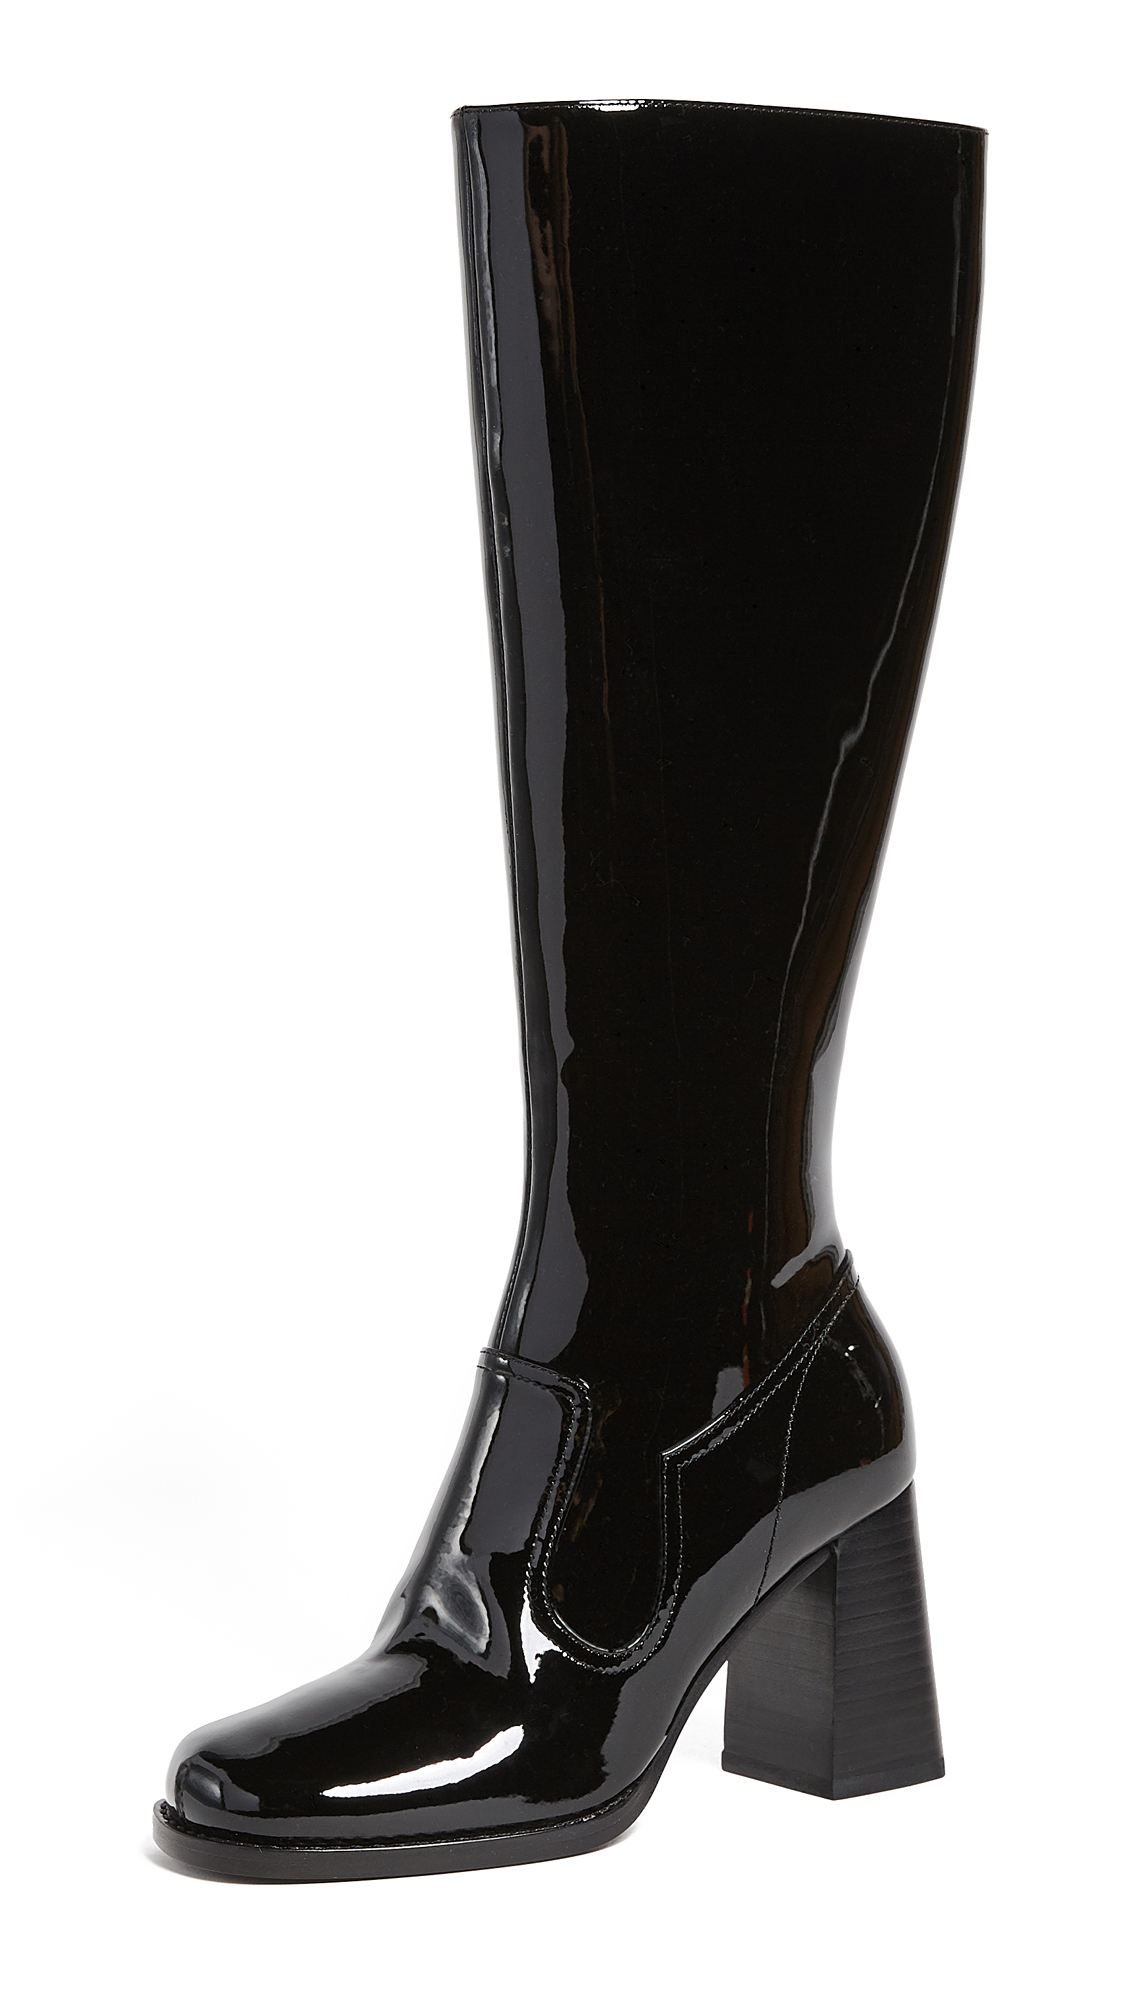 Marc Jacobs Maryna Tall Boots - Black